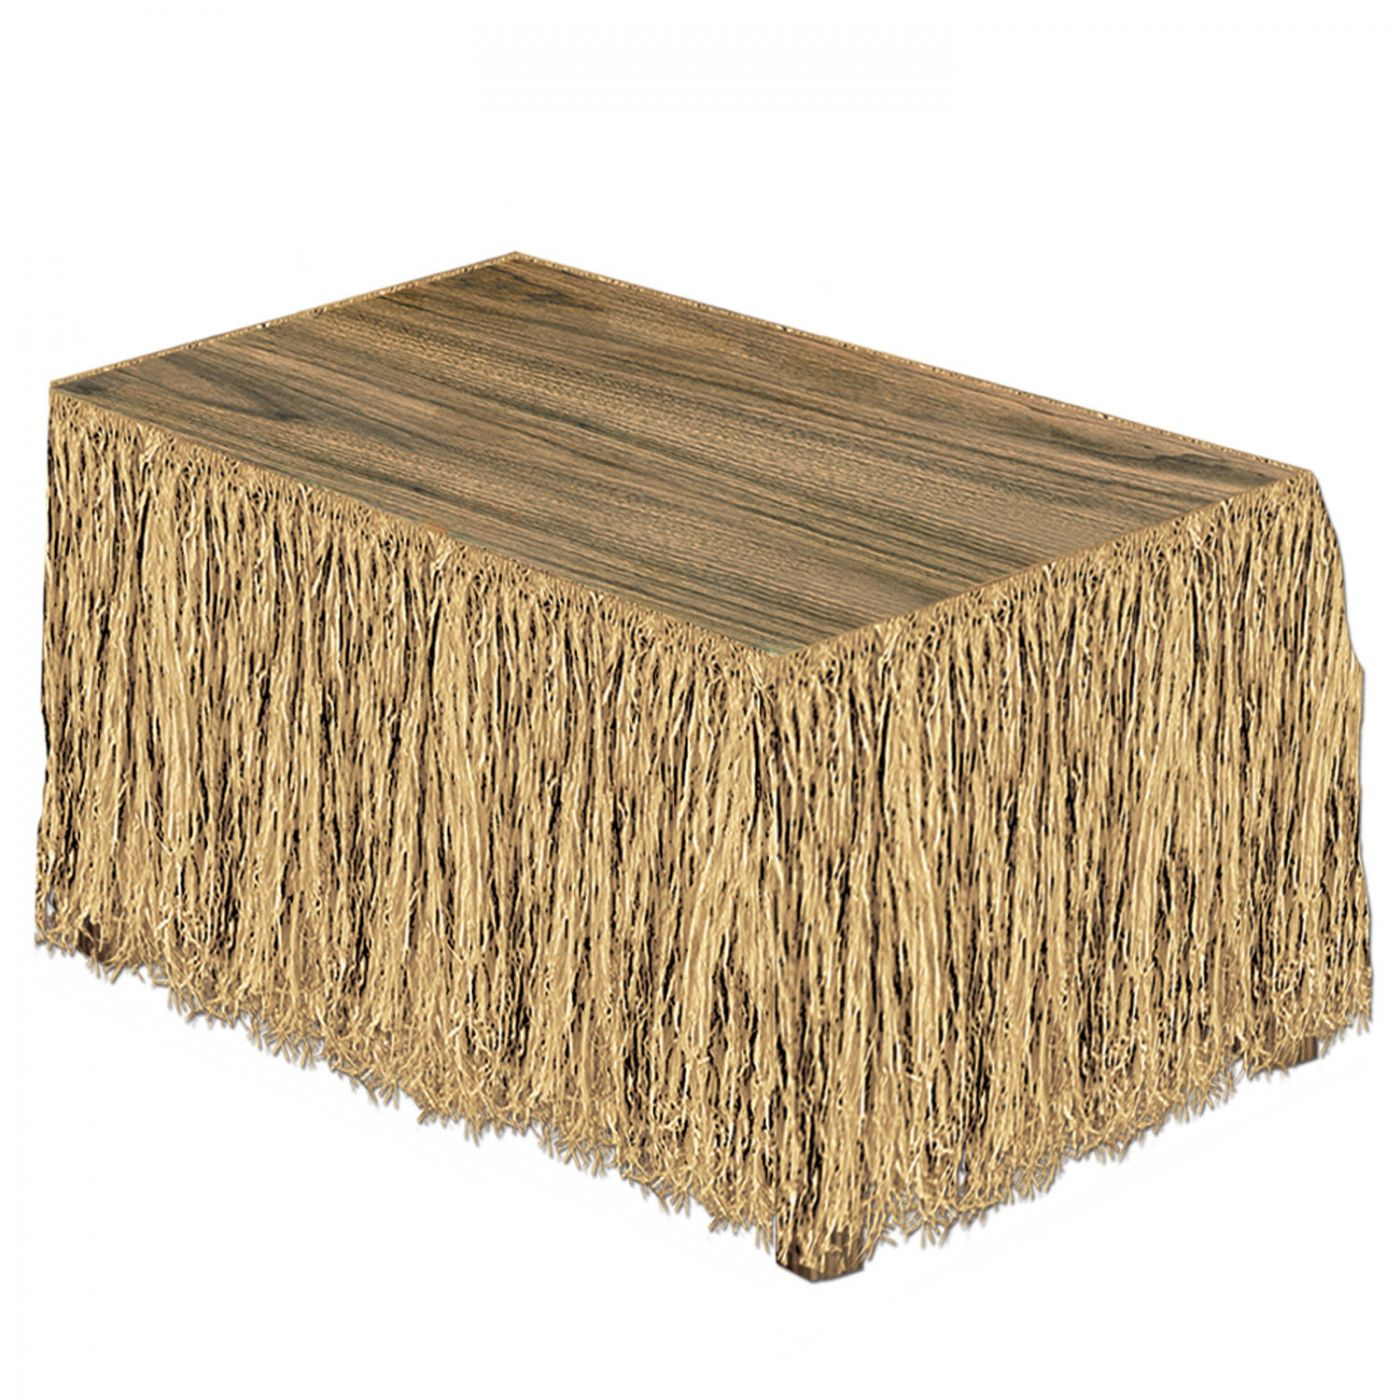 Raffia Table Skirting (6) image